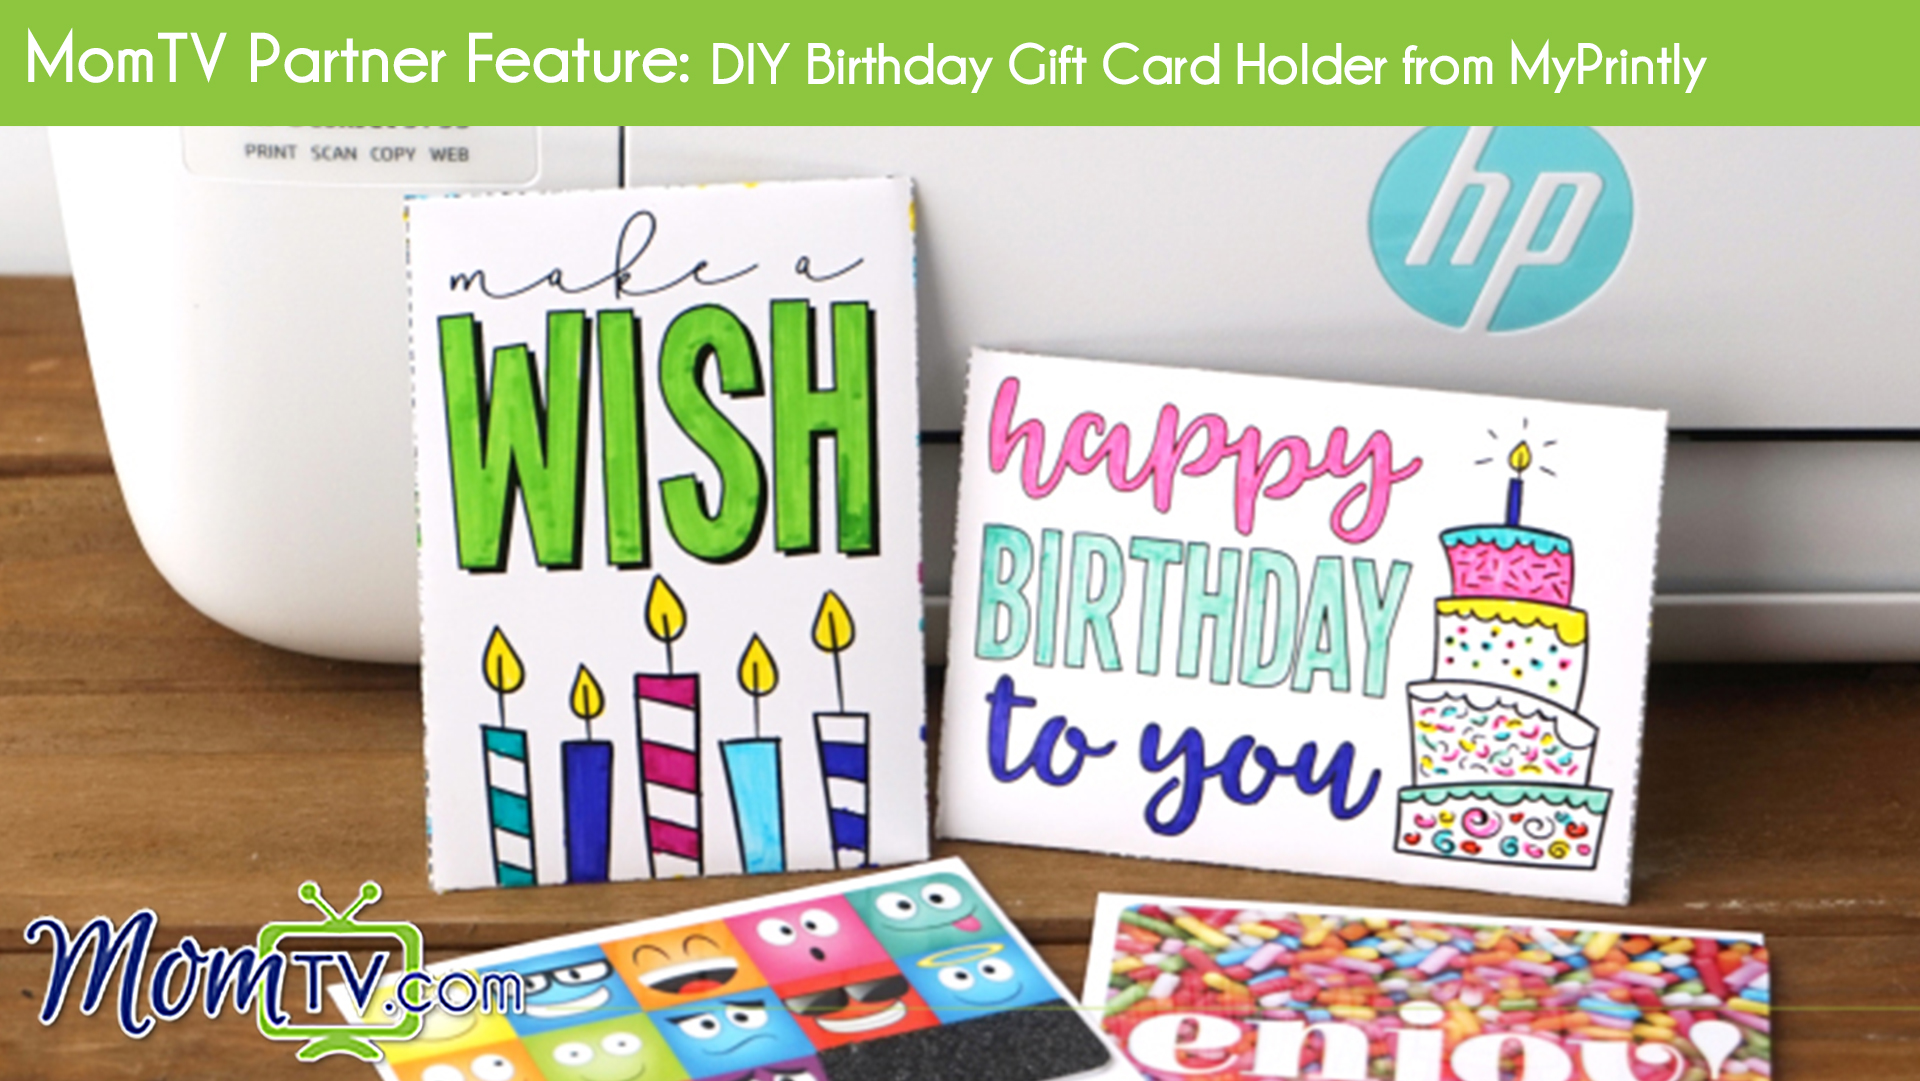 MomTV Partner Feature DIY Birthday Gift Card Holder From MyPrintly